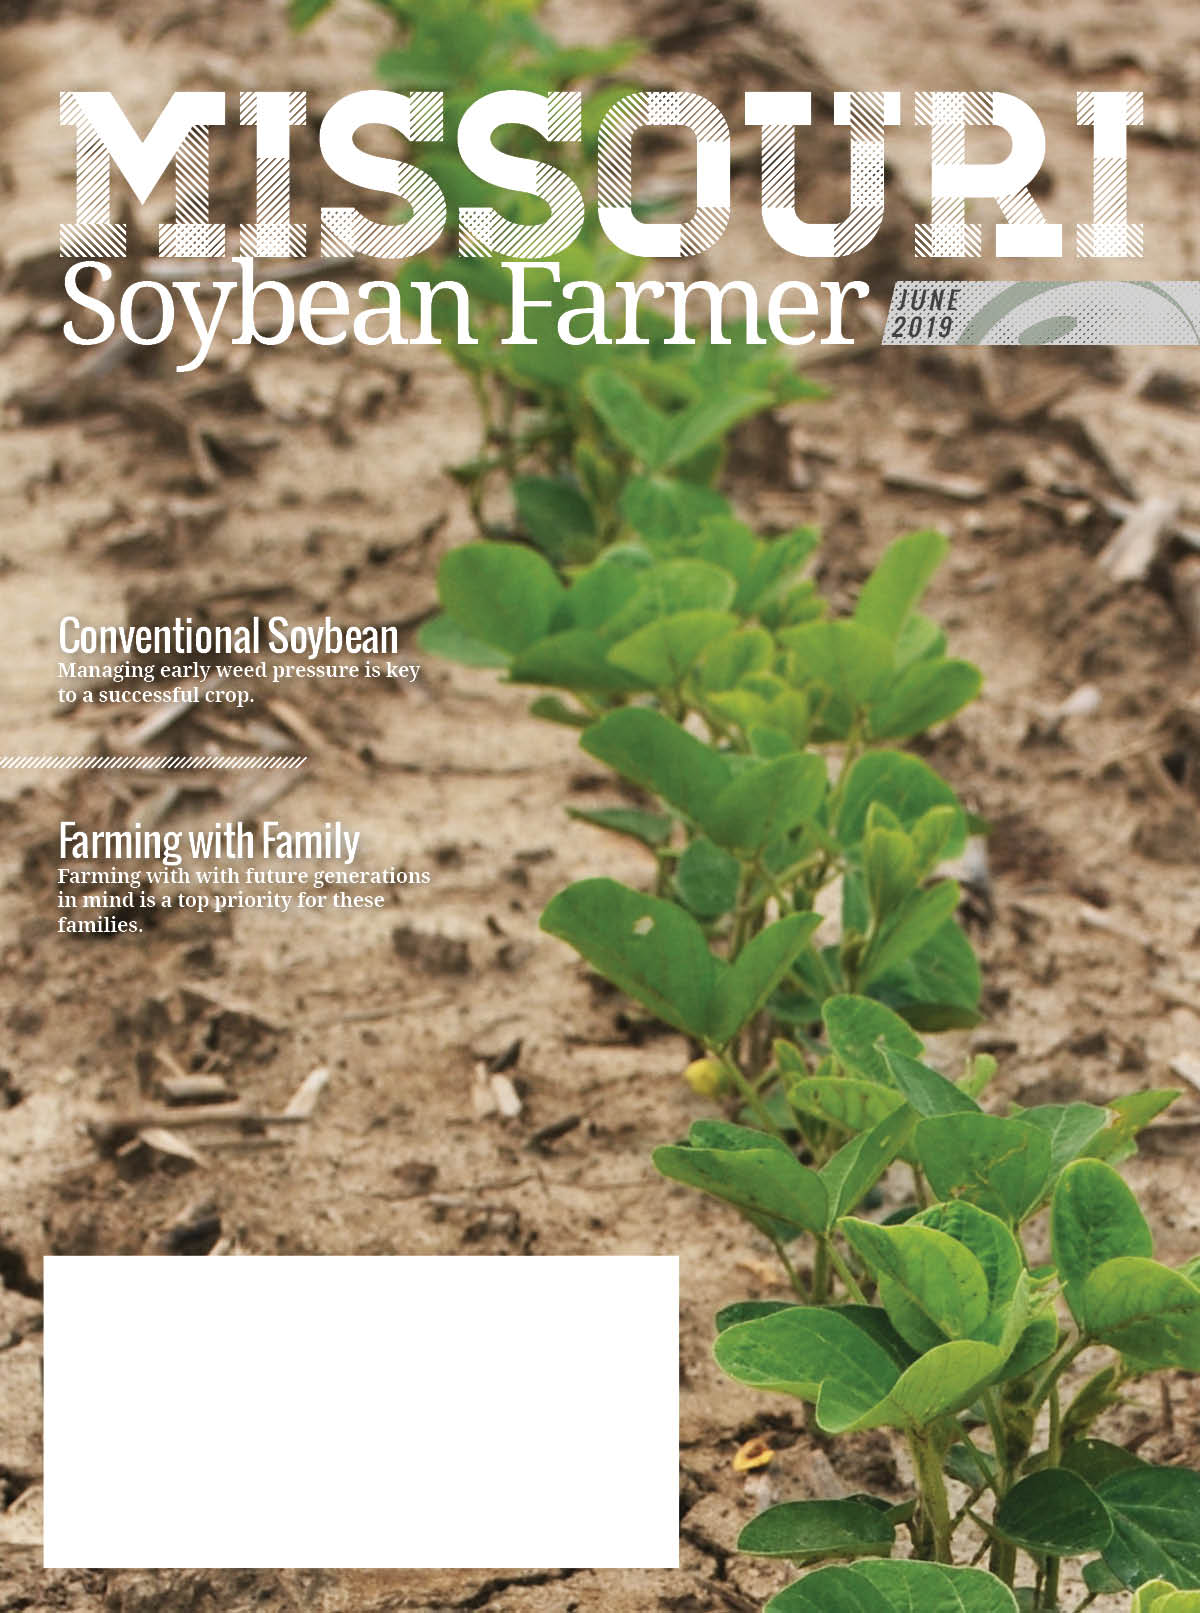 Missouri Soybean Farmer: June 2019 Issue